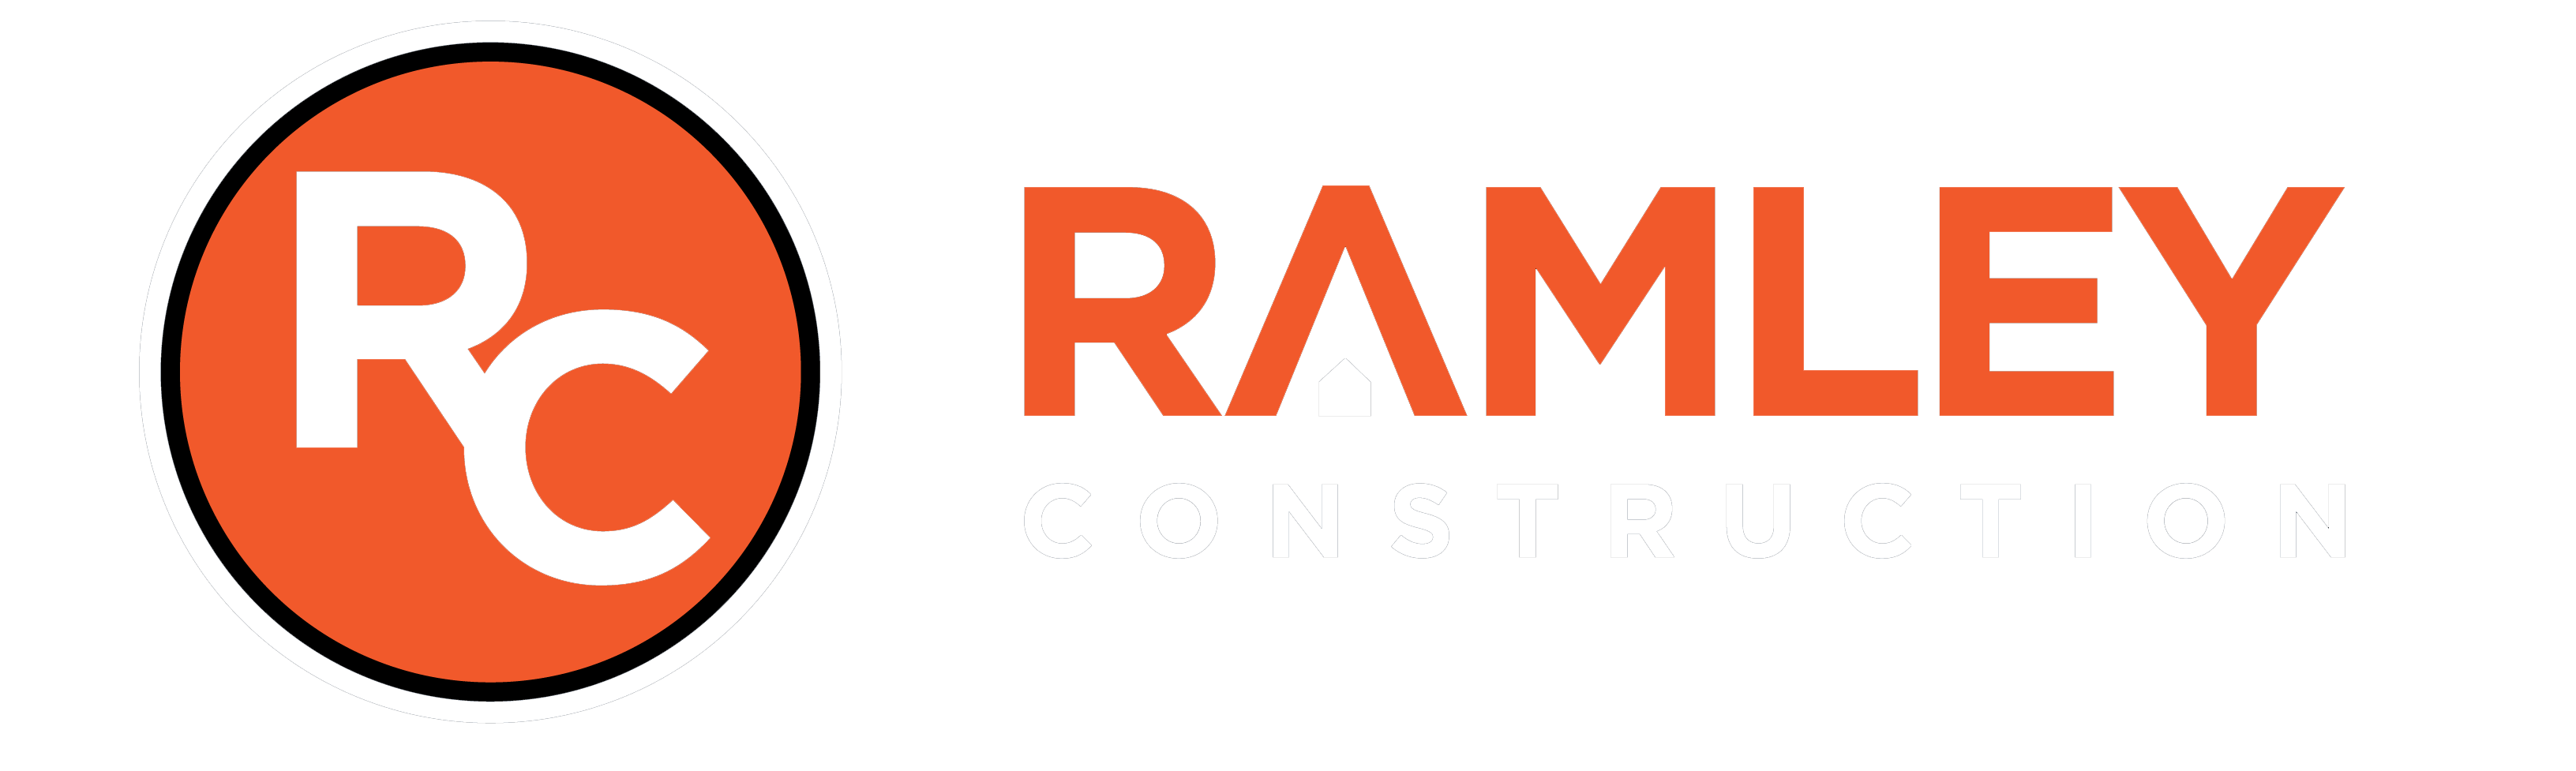 Ramley Construction in East Lansing